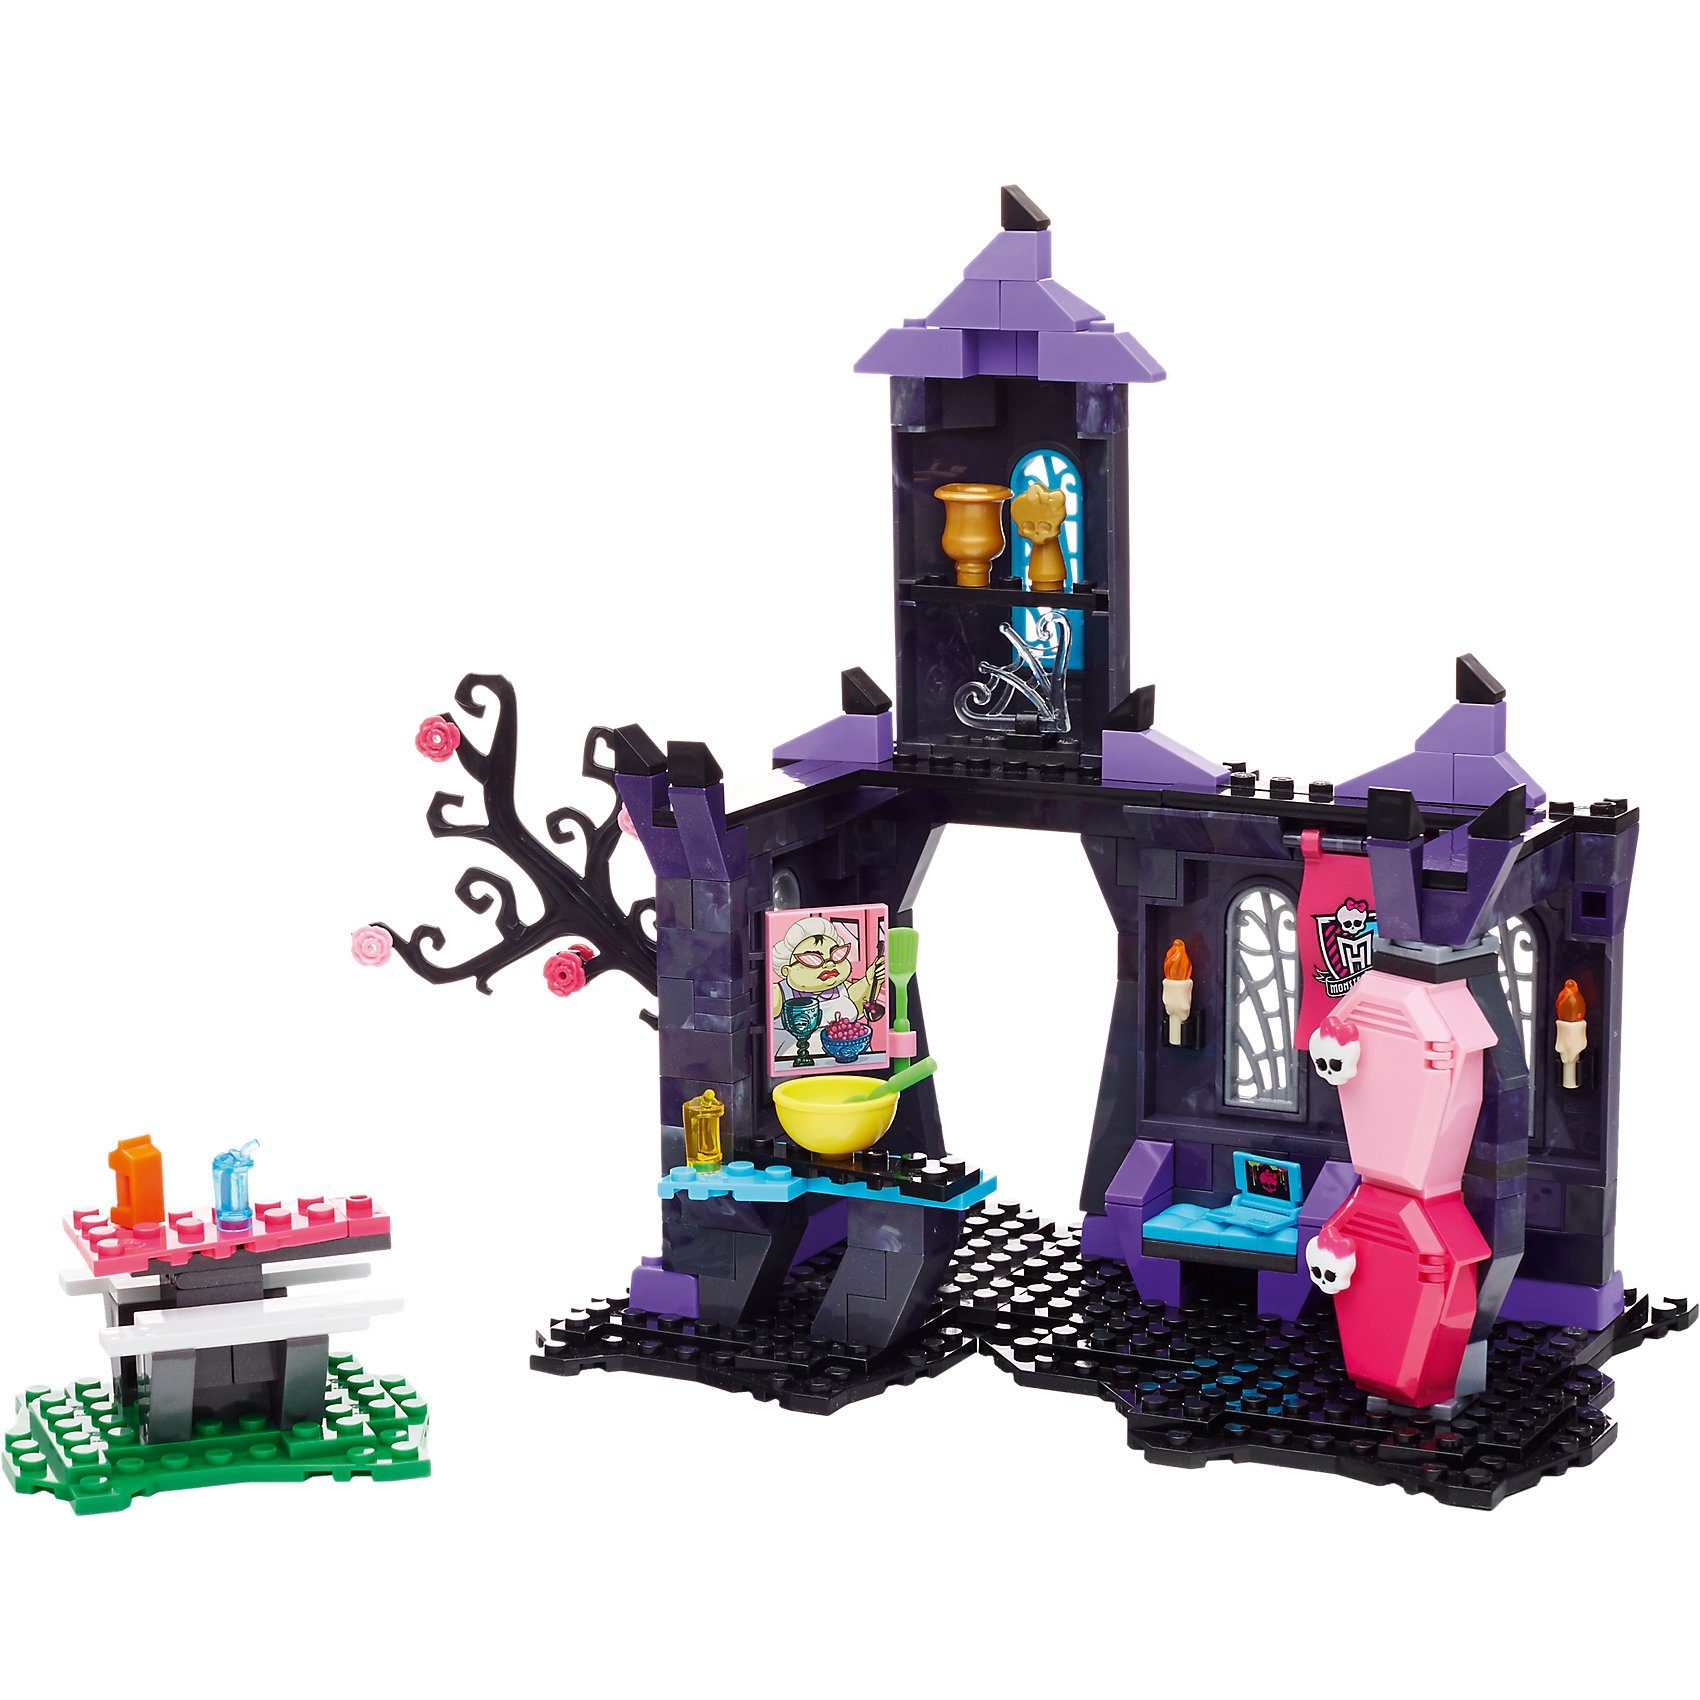 Mattel Mega Bloks Monster High Monsterschüler-Café